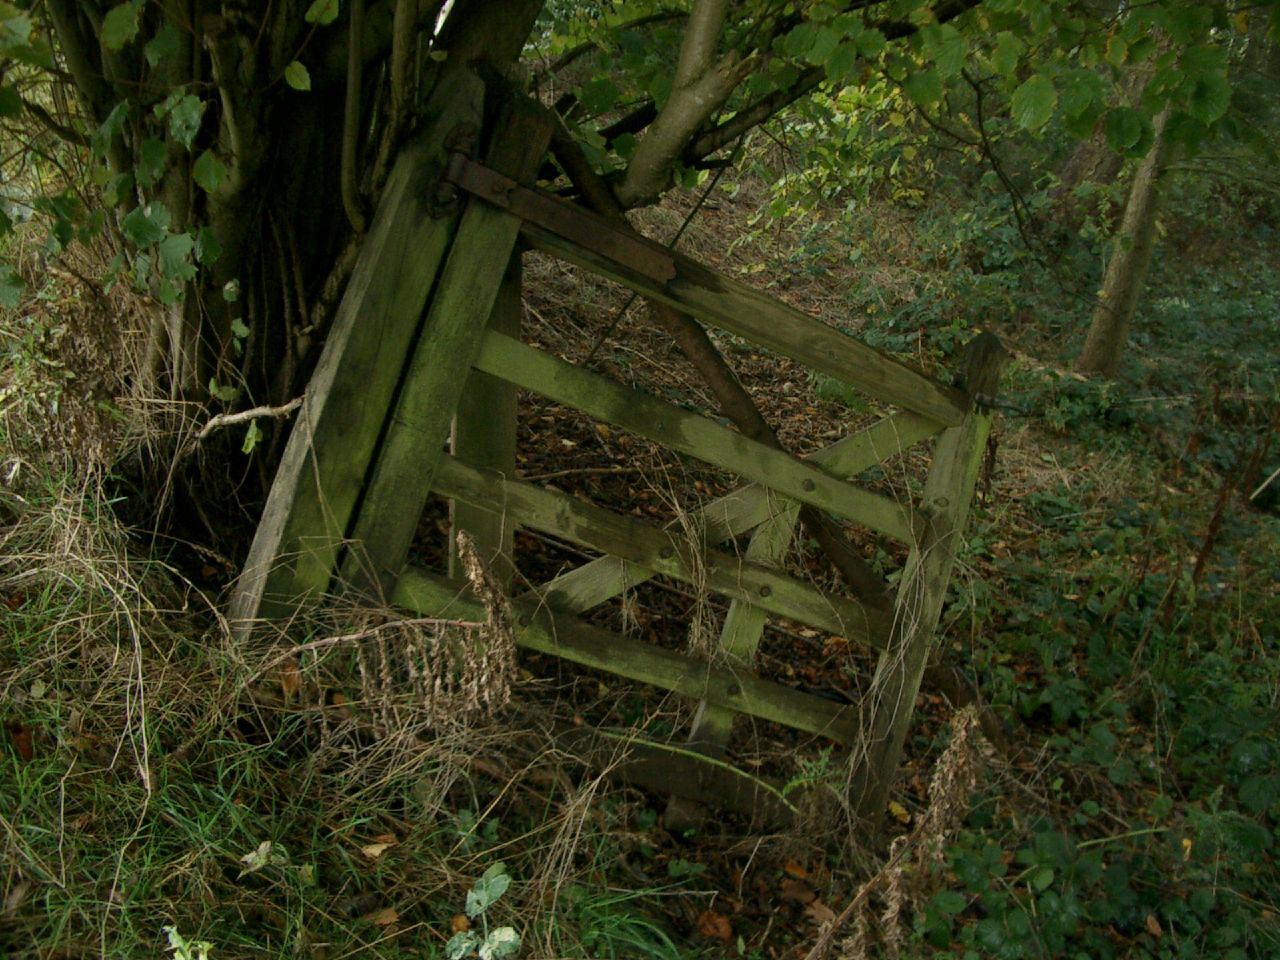 Which narrow gate is the narrow gate Jesus wants us to walk through?